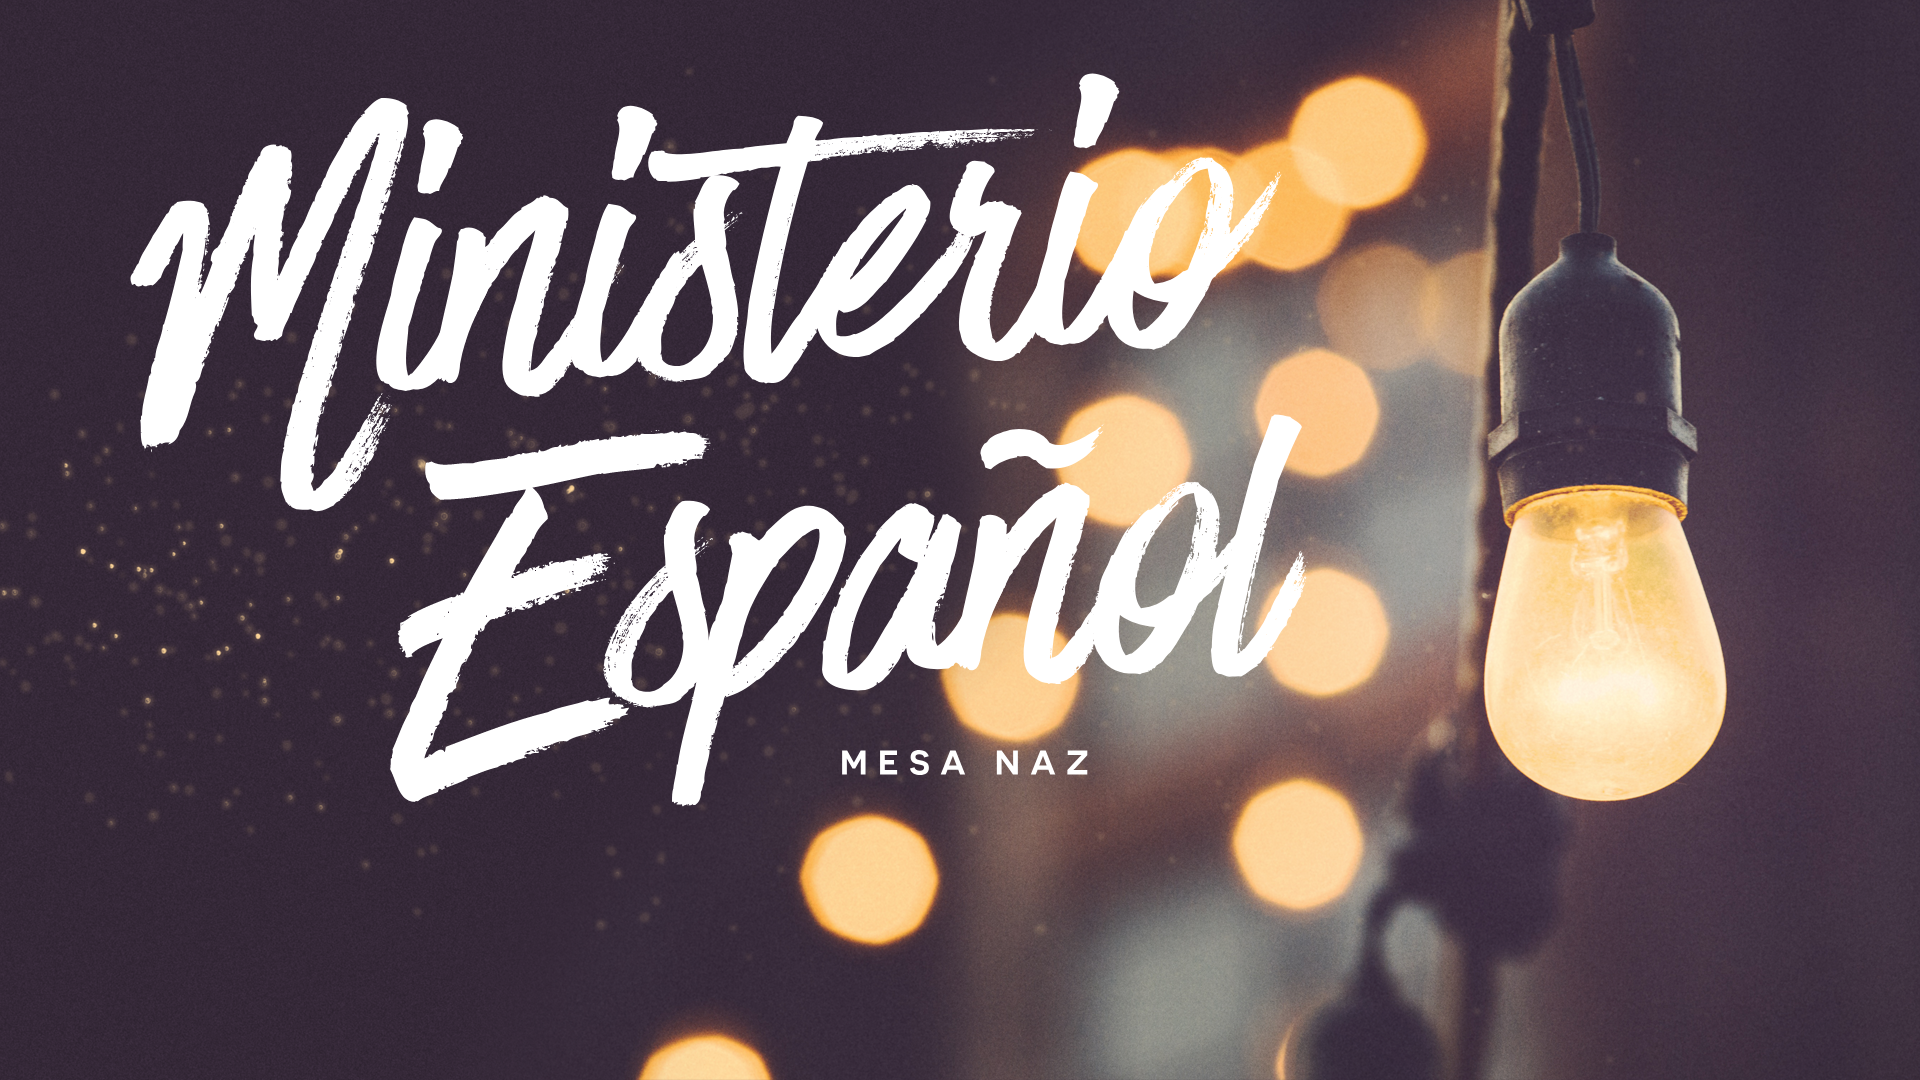 Spanish Ministry Banner.png